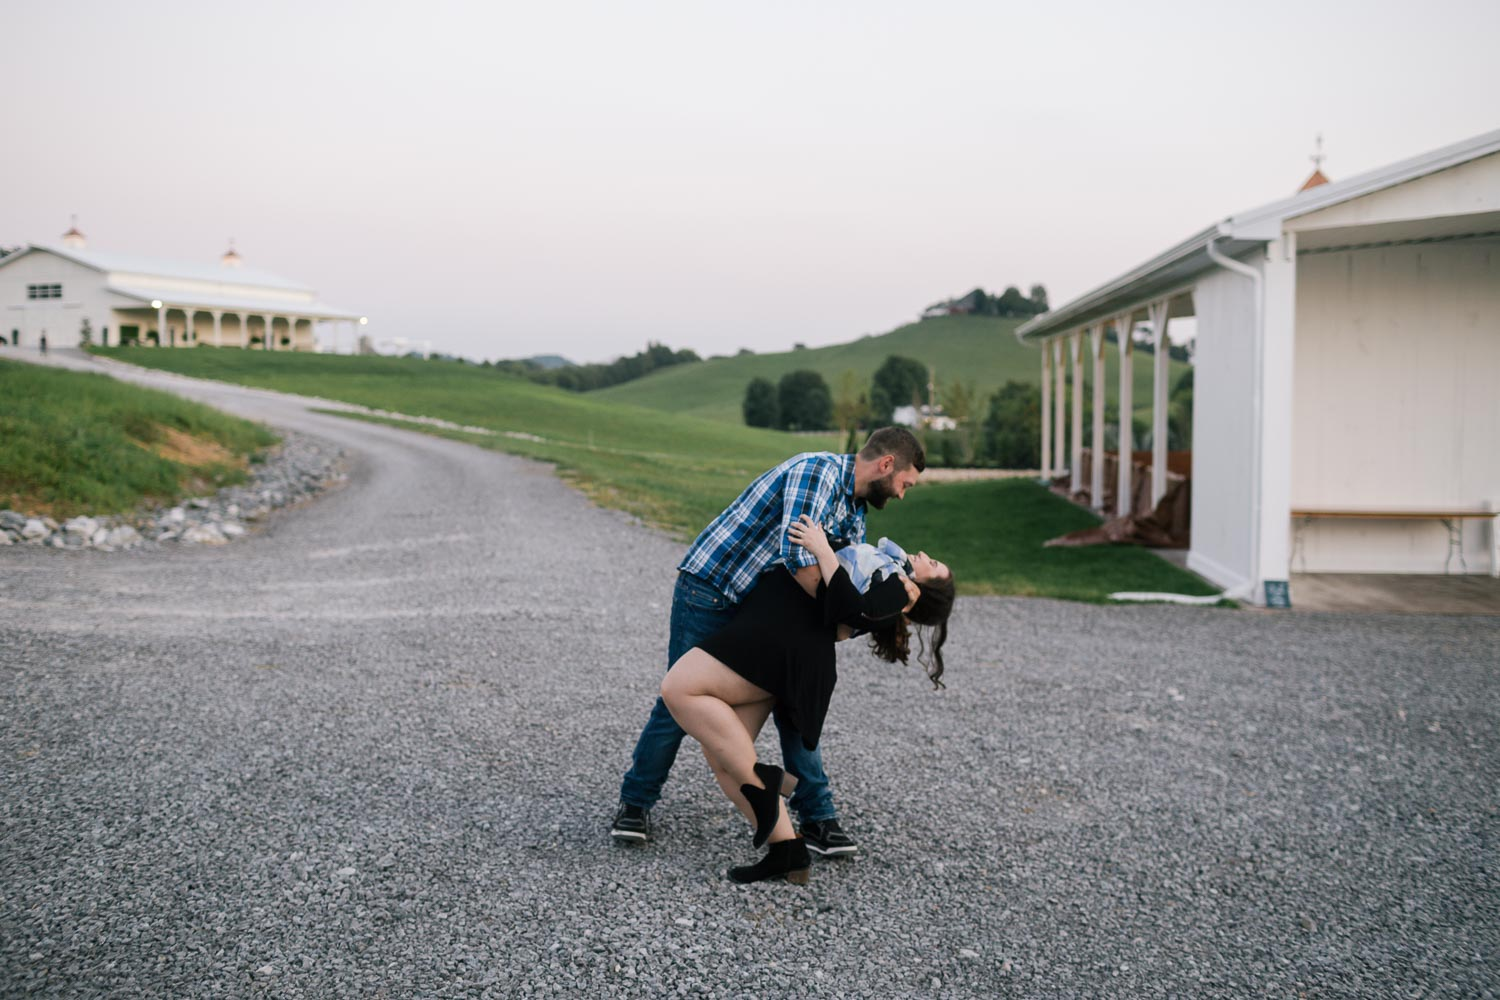 Nashville Tennessee Engagement Photography at the White Dove Barn by David A. Smith of DSmithImages Wedding Photography, Portraits, and Events, a wedding photographer in Birmingham, Alabama